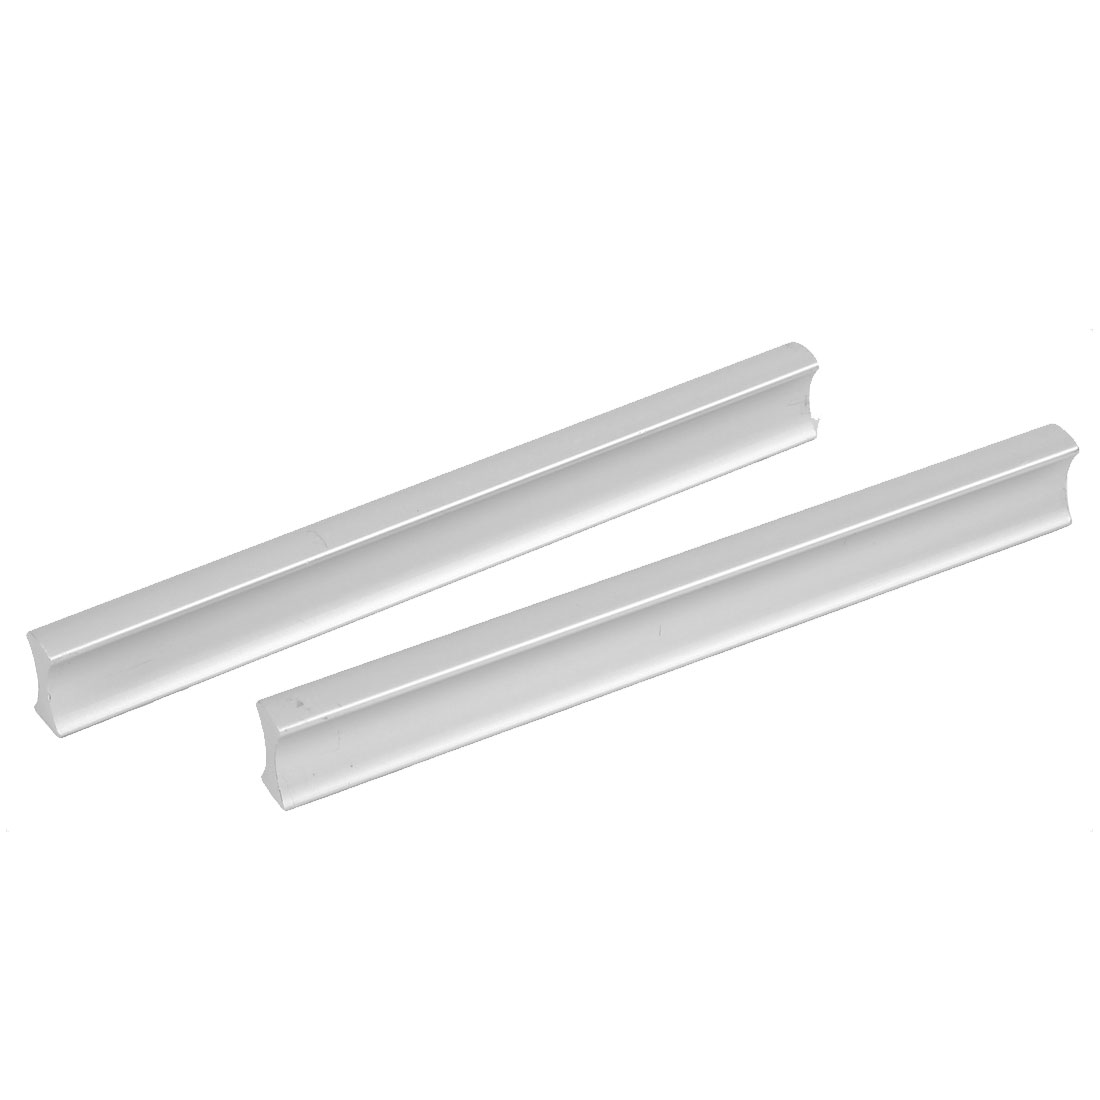 128mm Mount Distance Kitchen Cupboard Dresser Rectangular Pull Handle Silver Tone 2pcs